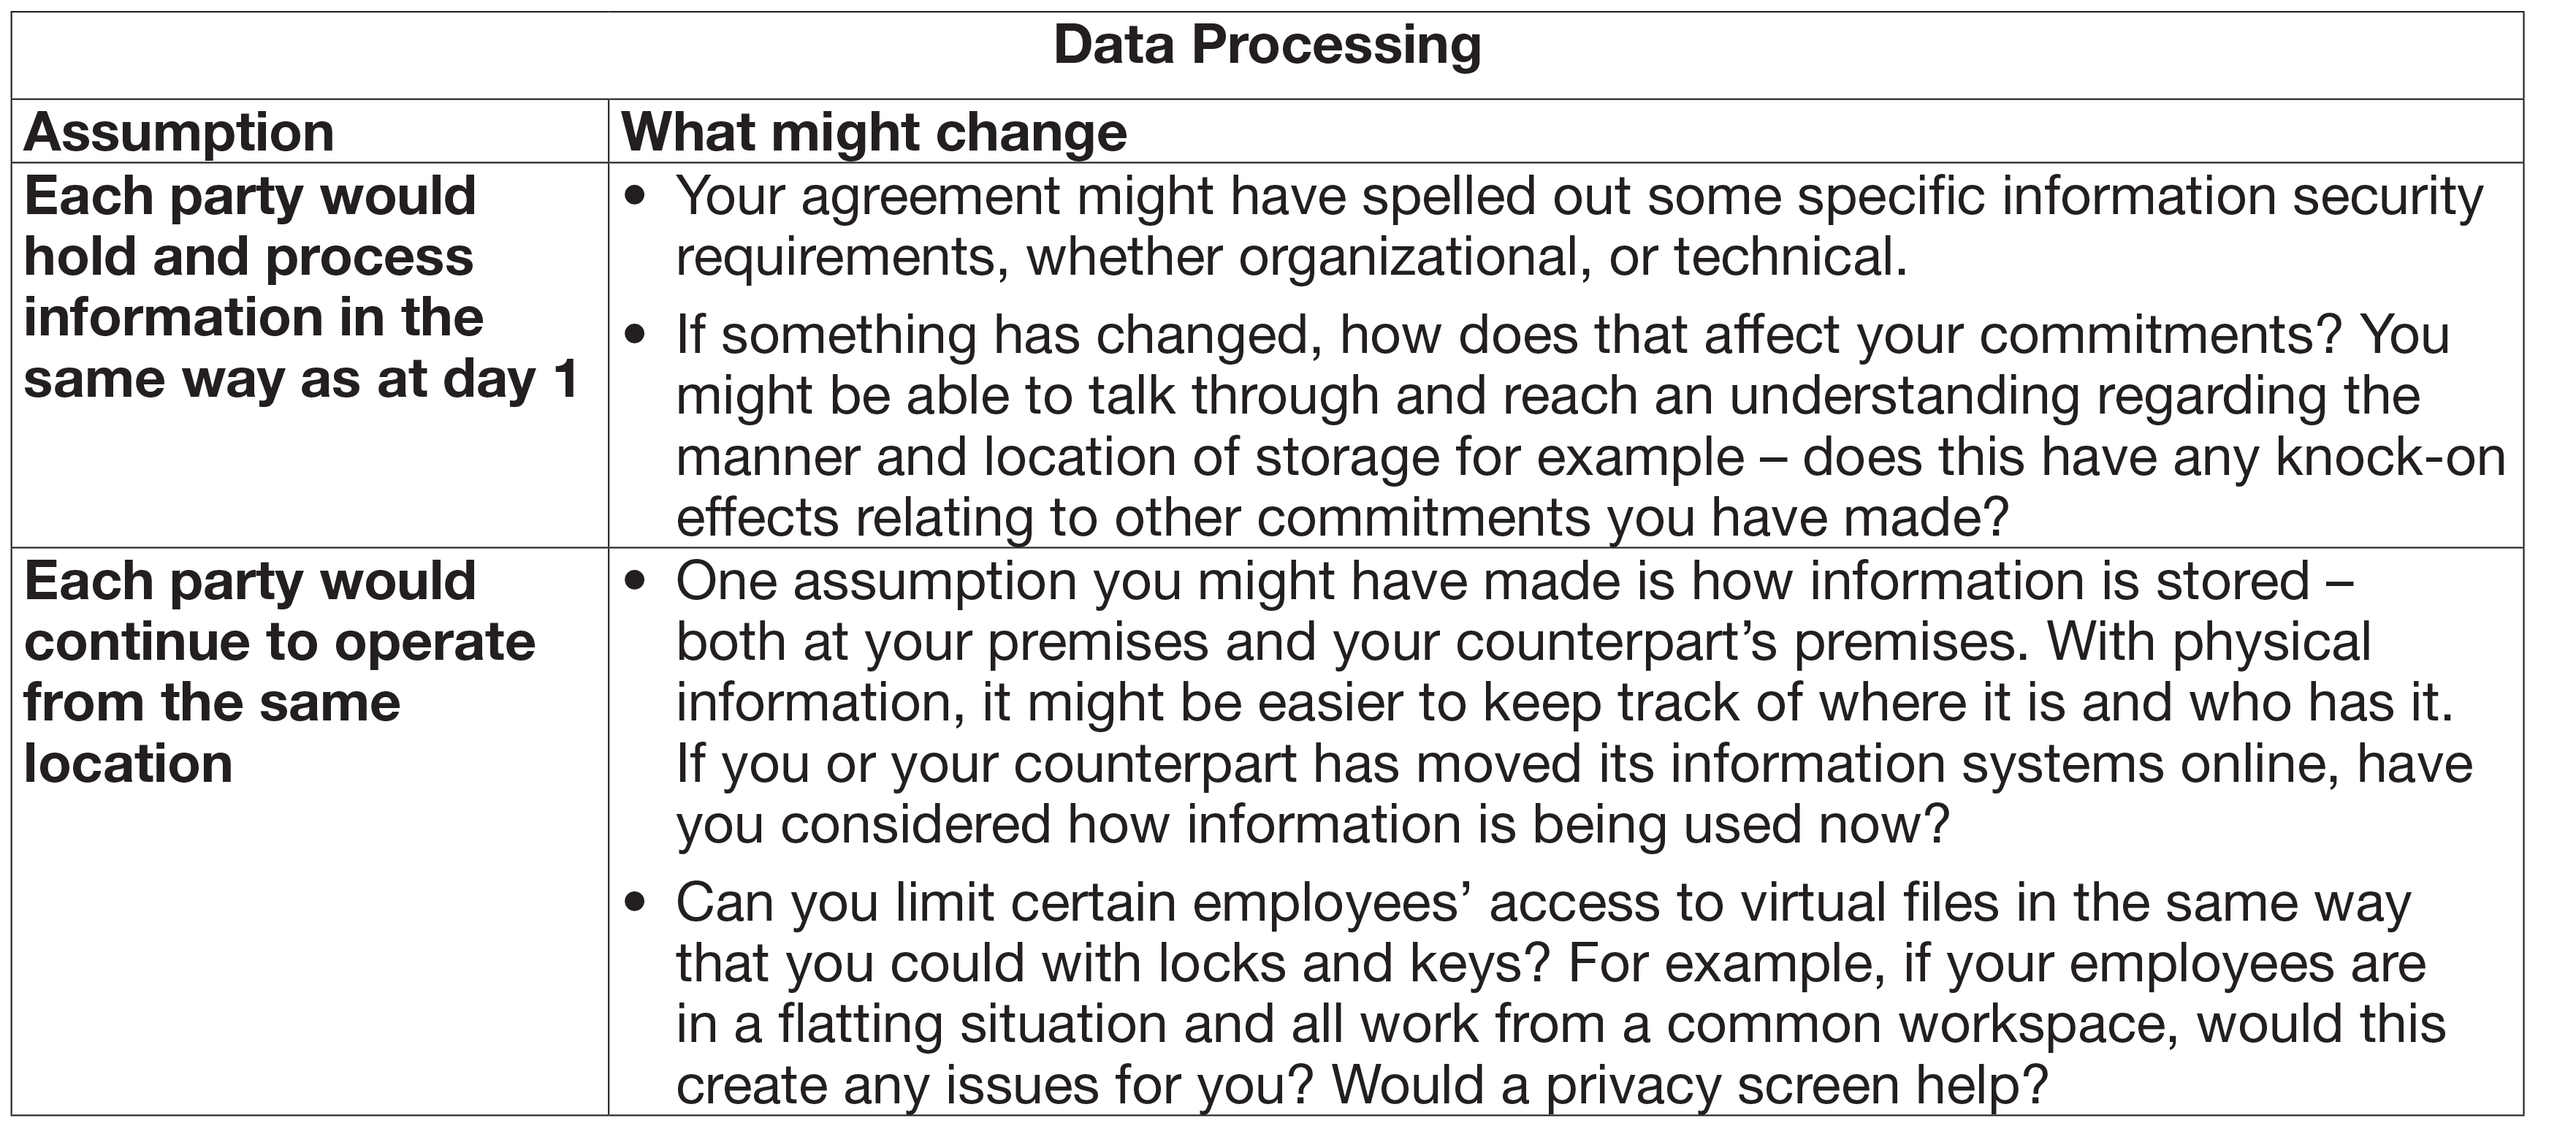 What are the assumptions and things to consider for data processing arrangements?